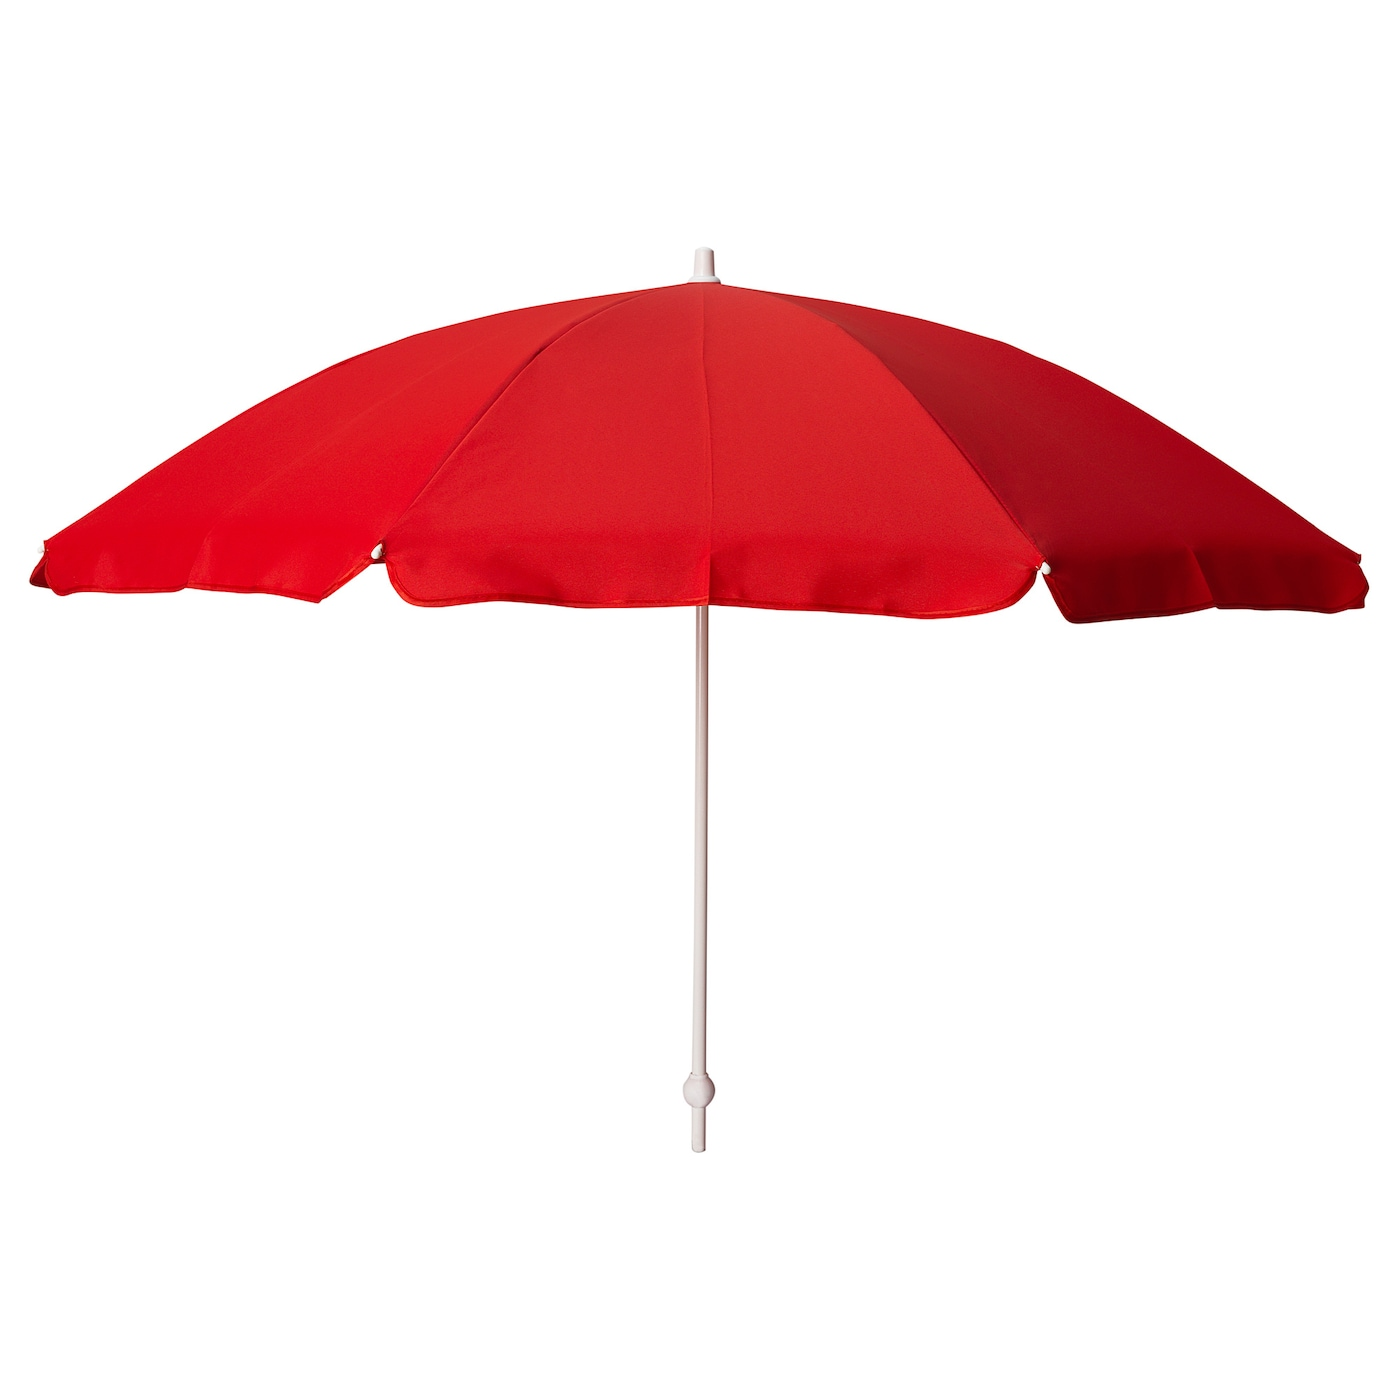 Ikea RamsÖ Parasol Easy To Attach And Move As It Has A Socket